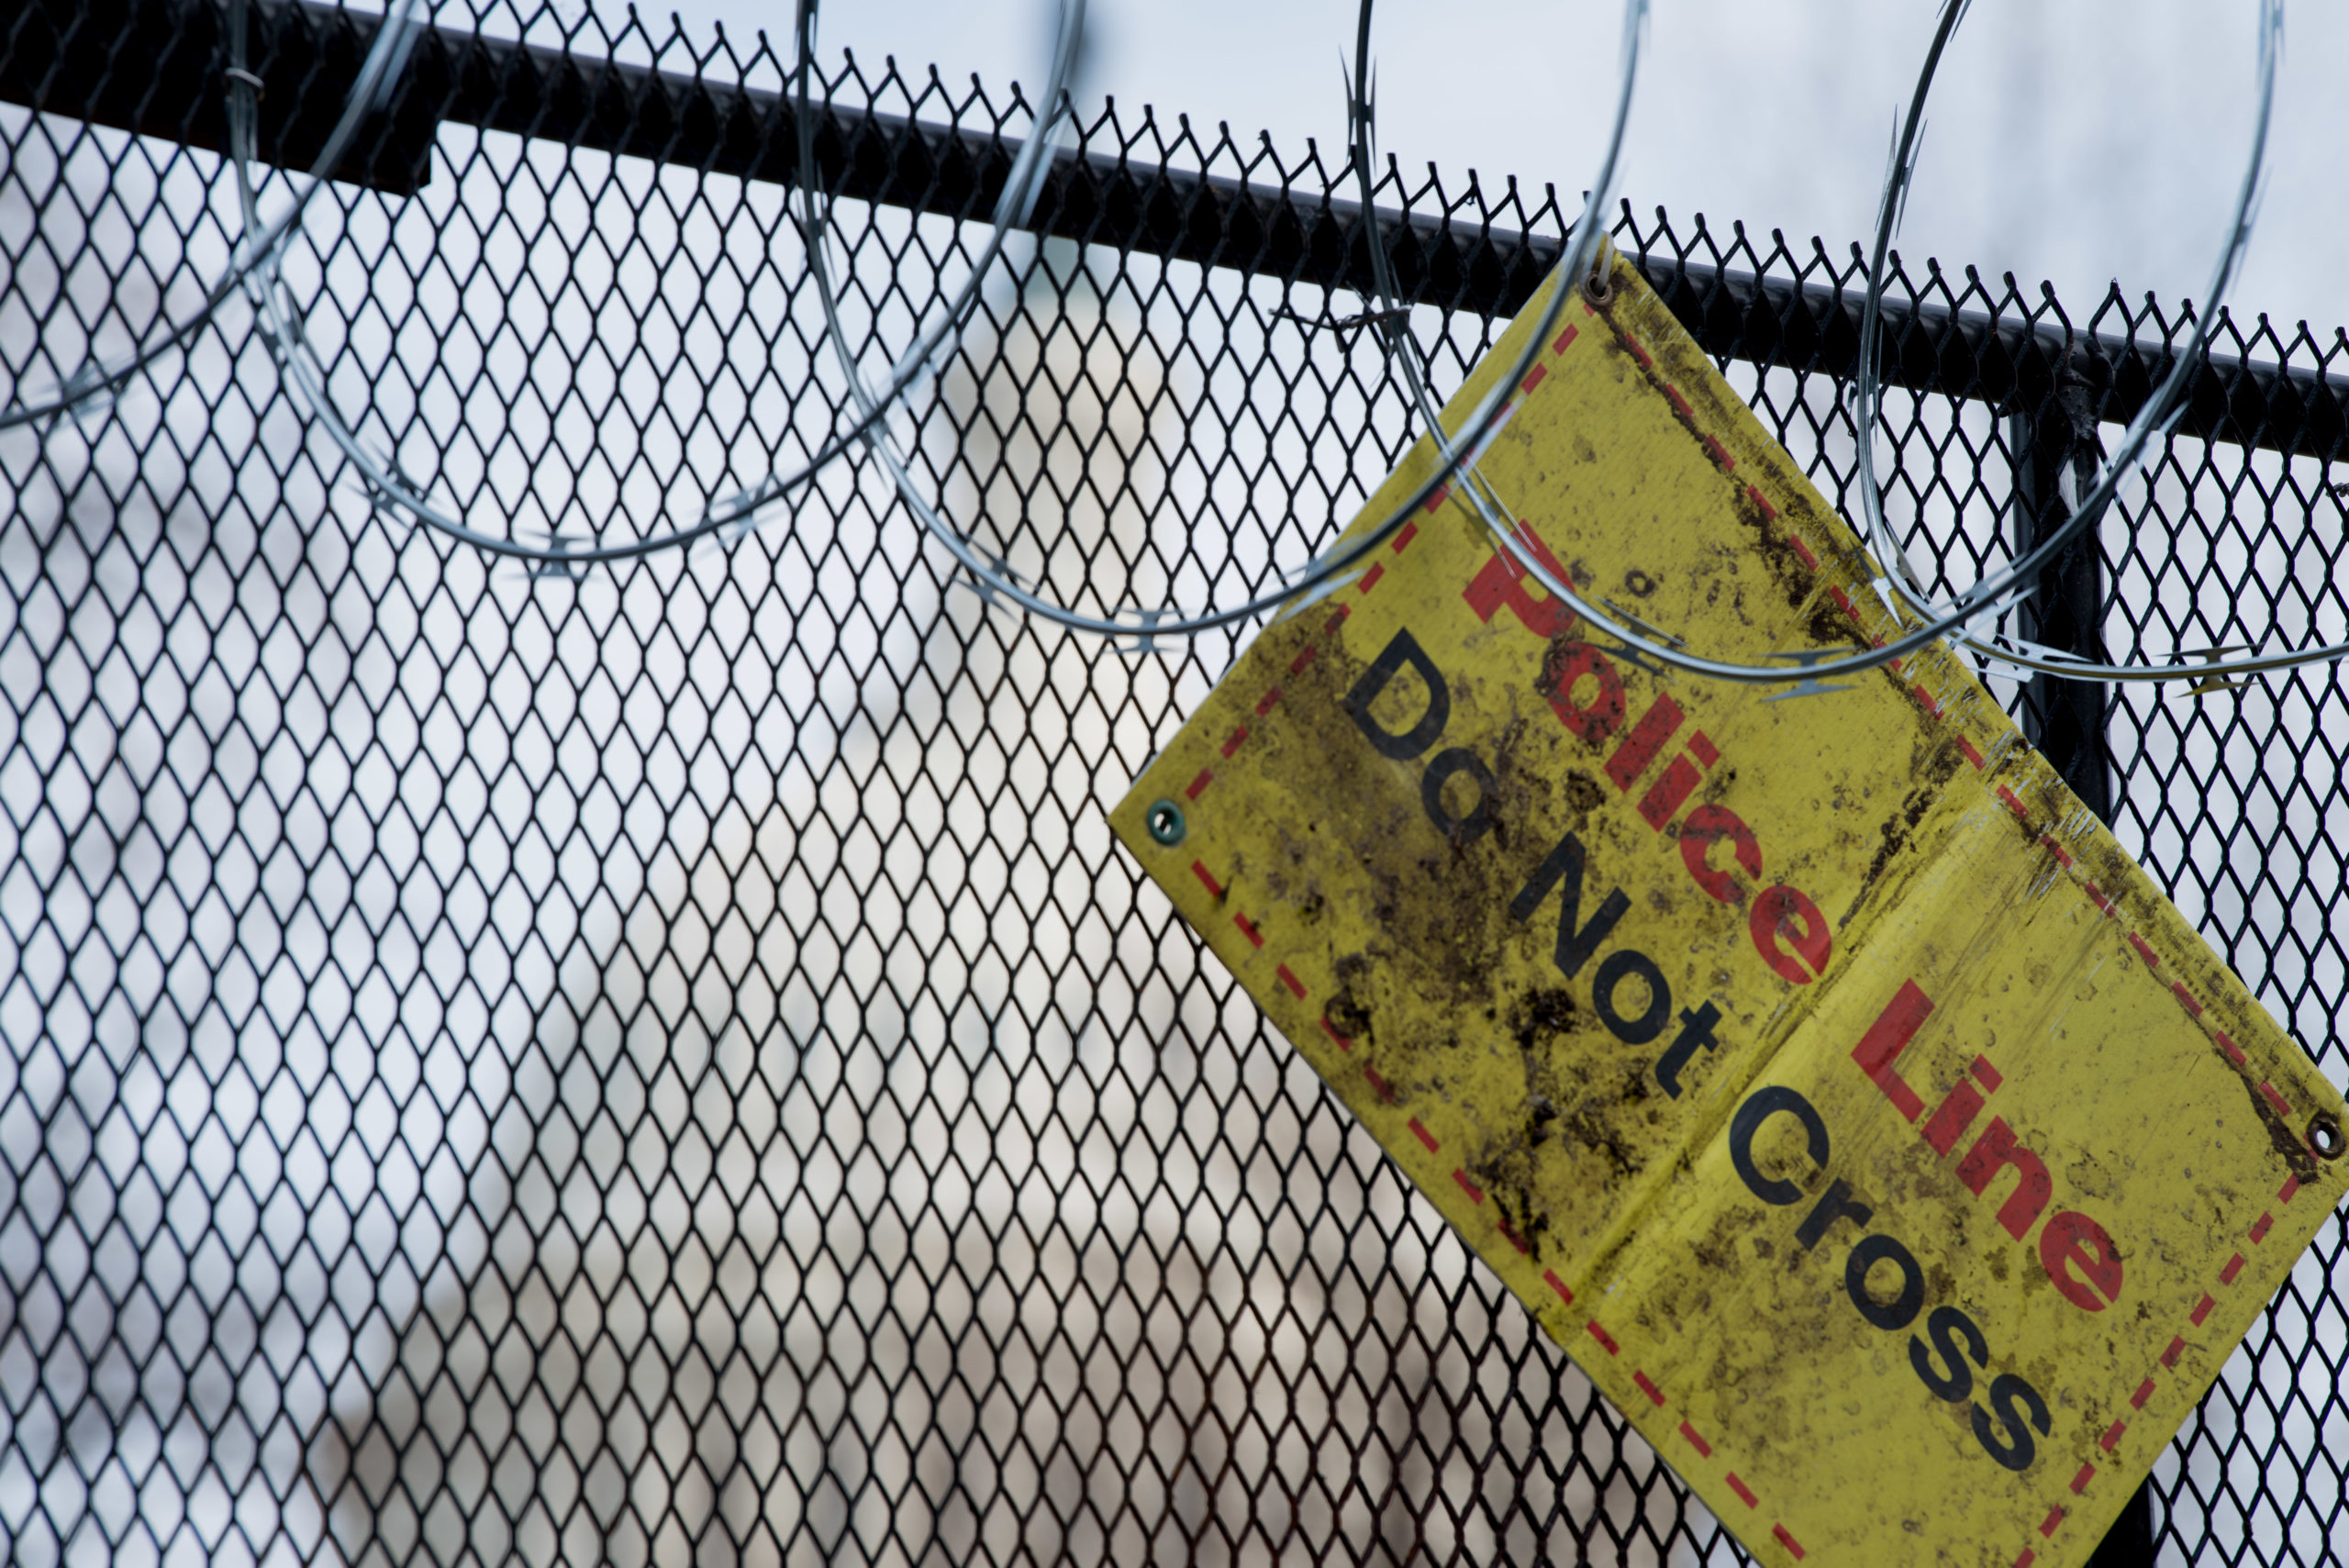 WASHINGTON, DC - JANUARY 15: A Police sign hangs from the new fencing with razor wire after last week's Riot at US Capitol and ahead of the inauguration on January 15, 2021 in Washington, DC. The FBI has warned of additional threats against the US Capitol and in all 50 states. (Photo by Liz Lynch/Getty Images)